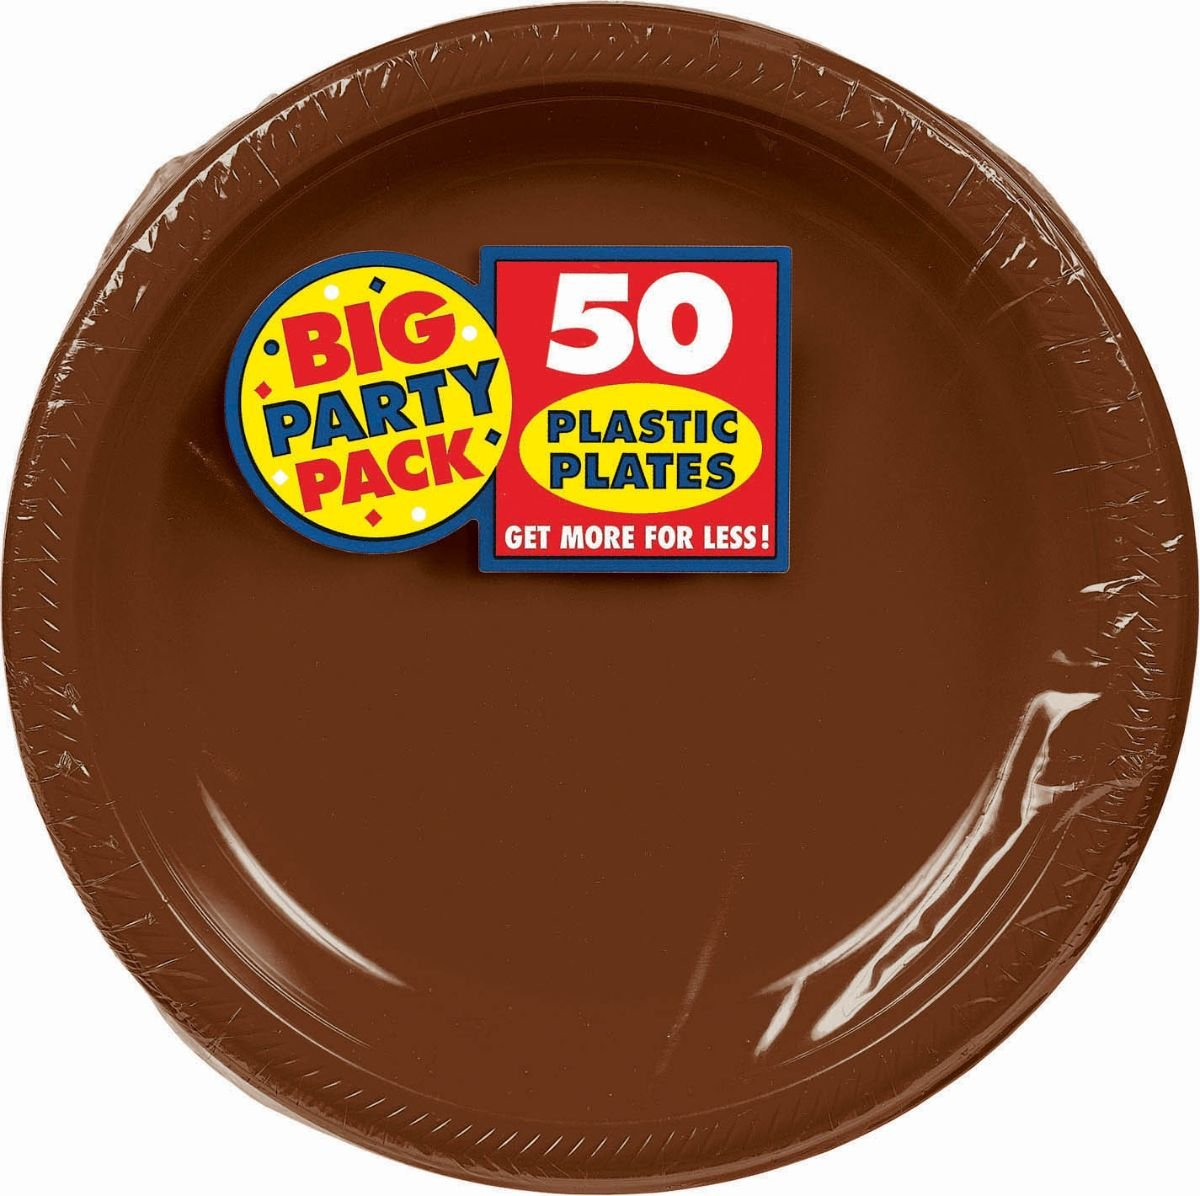 Amscan Big Party Pack 50 Count Plastic Lunch Plates, 10.5-Inch, Chocolate Brown by Amscan (Image #1)